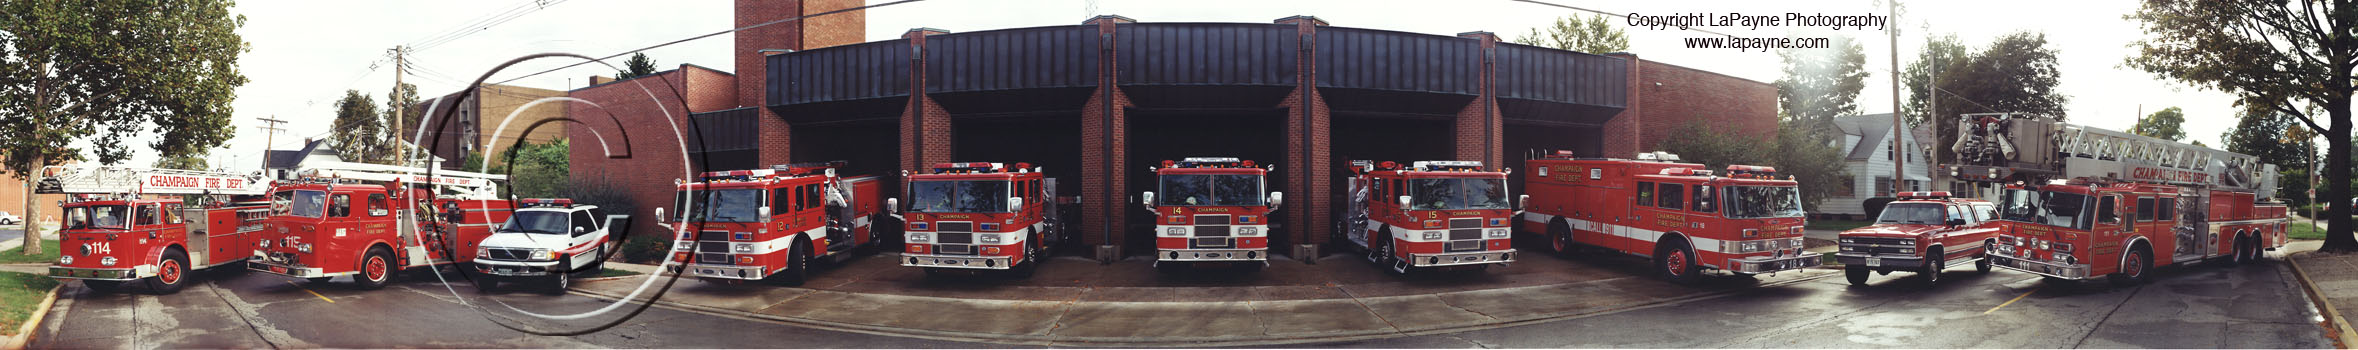 Champaign Fire Dept. at Station